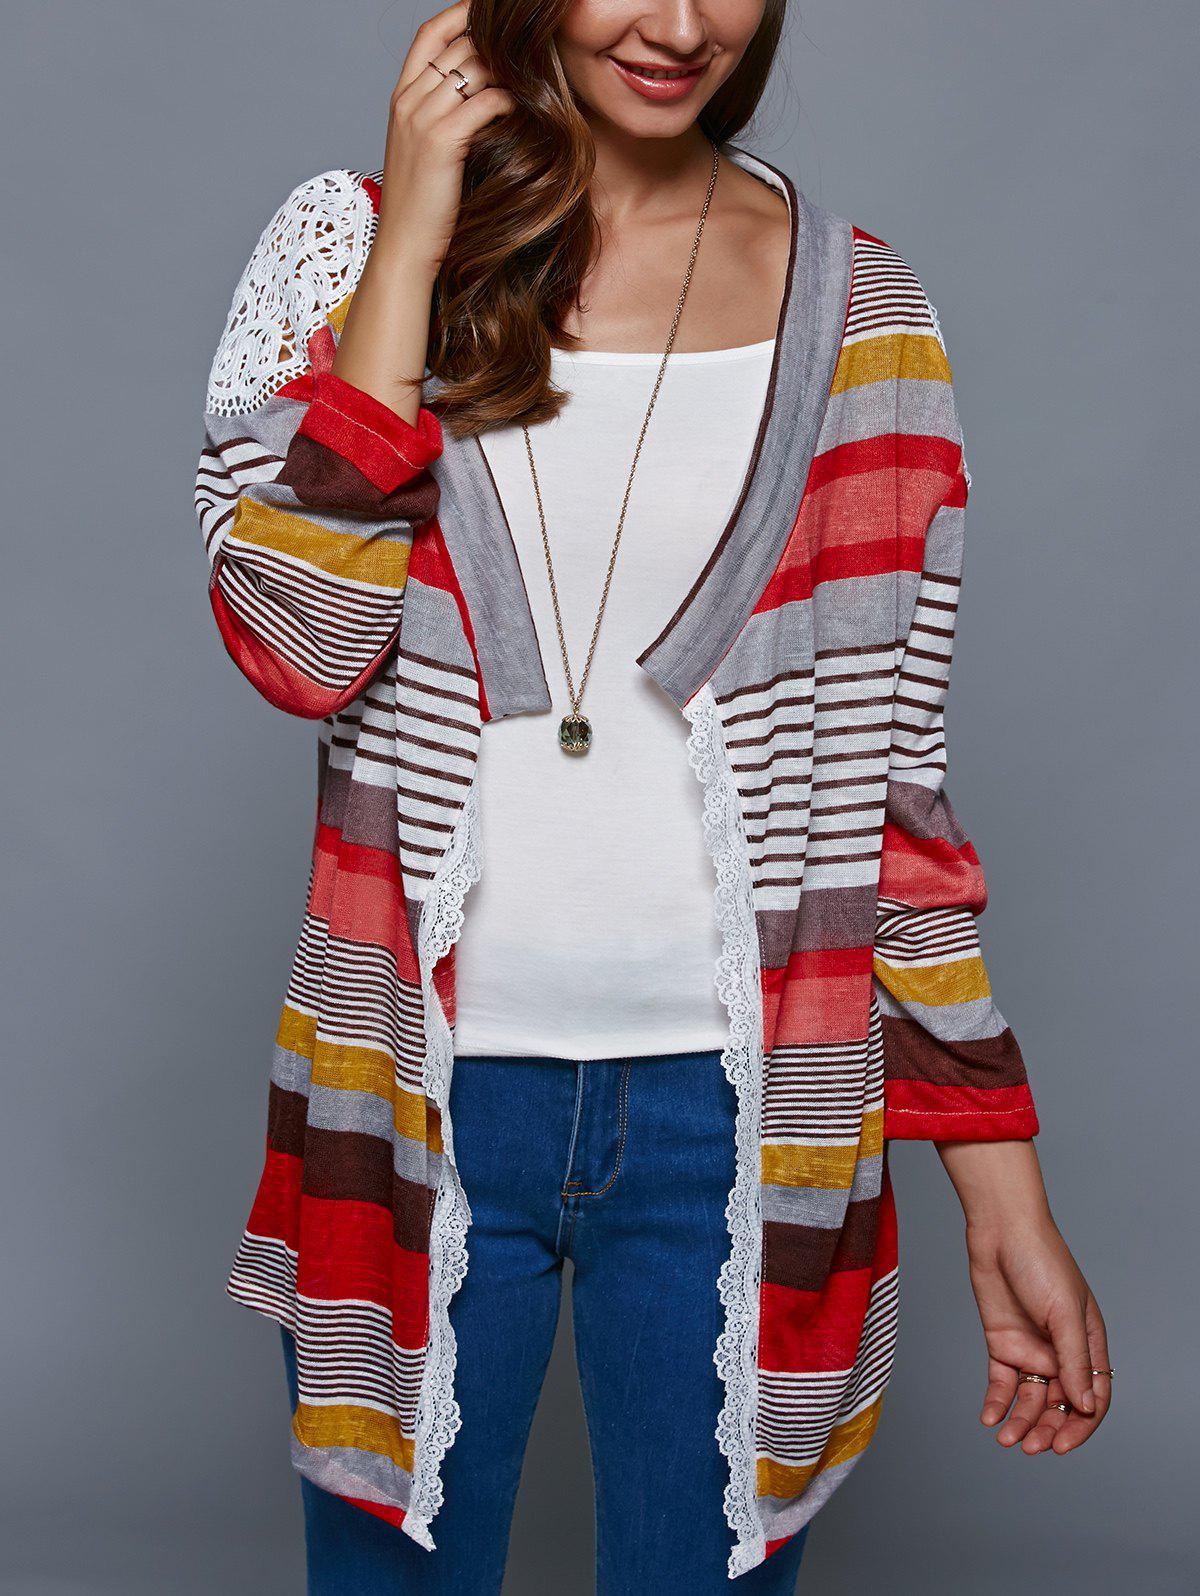 Colorful Print Thin CardiganWOMEN<br><br>Size: S; Color: COLORMIX; Type: Cardigans; Material: Polyester; Sleeve Length: Full; Collar: Collarless; Style: Fashion; Pattern Type: Print; Season: Fall,Spring,Summer; Weight: 0.150kg; Package Contents: 1 x Cardigan;